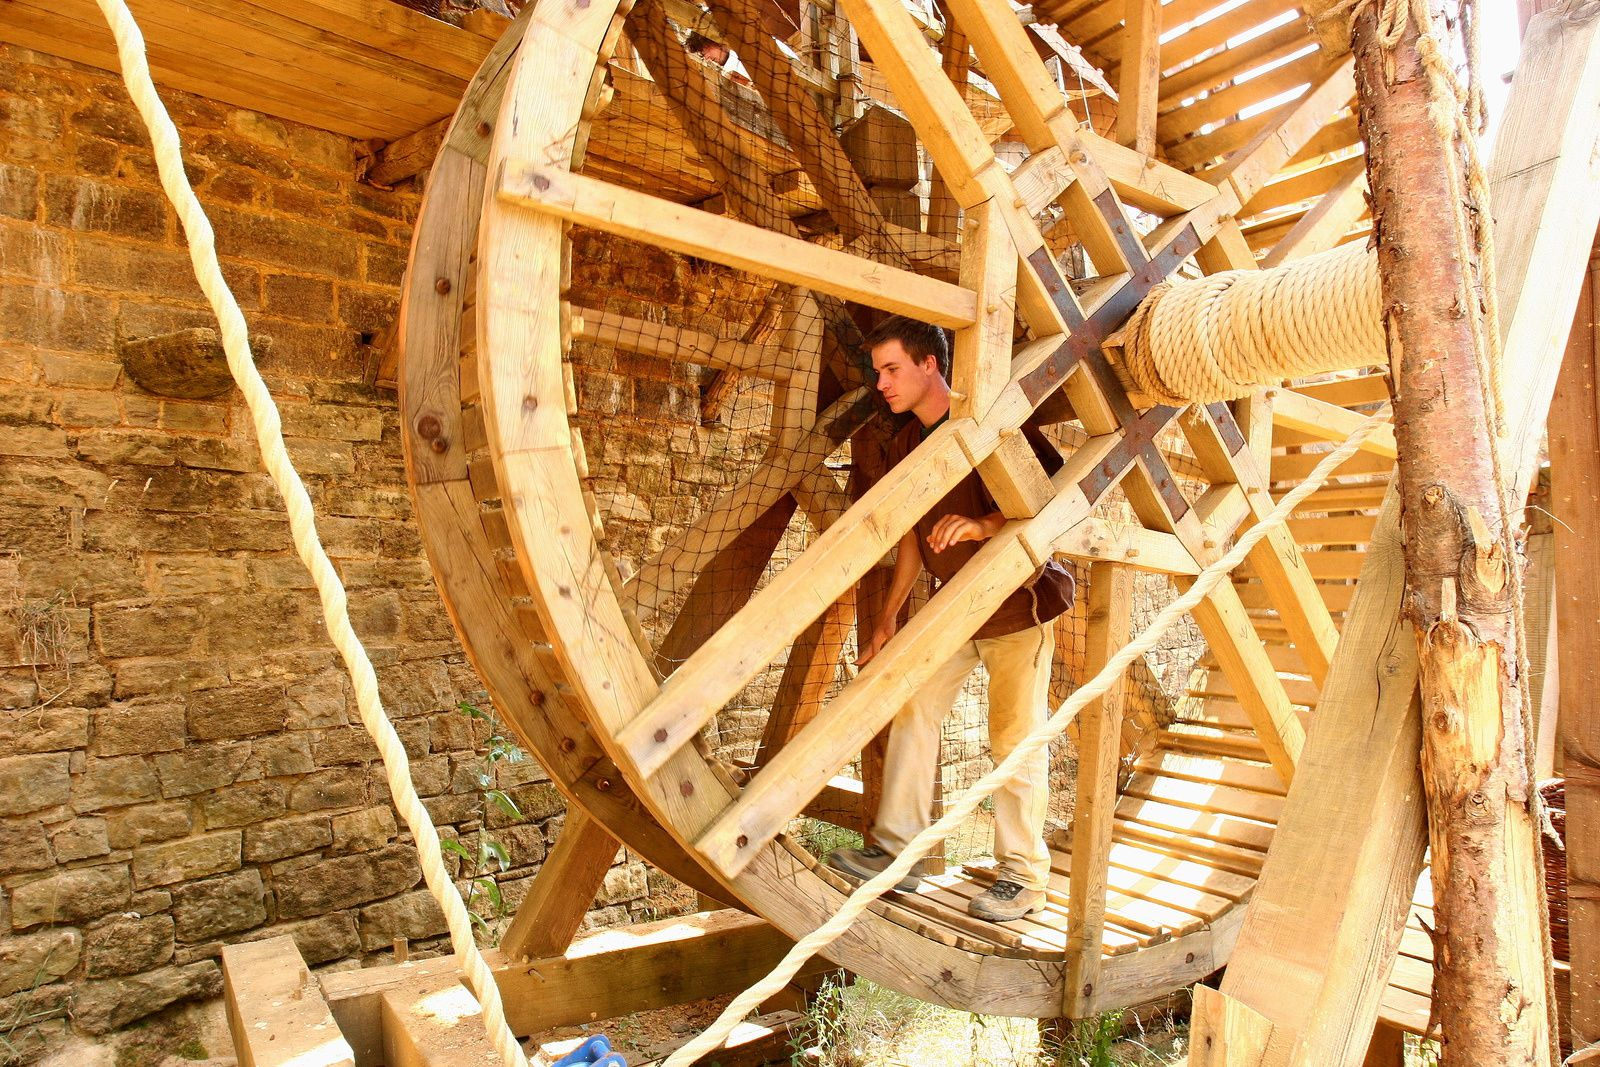 Roue de carrier en direct du Moyen-Age